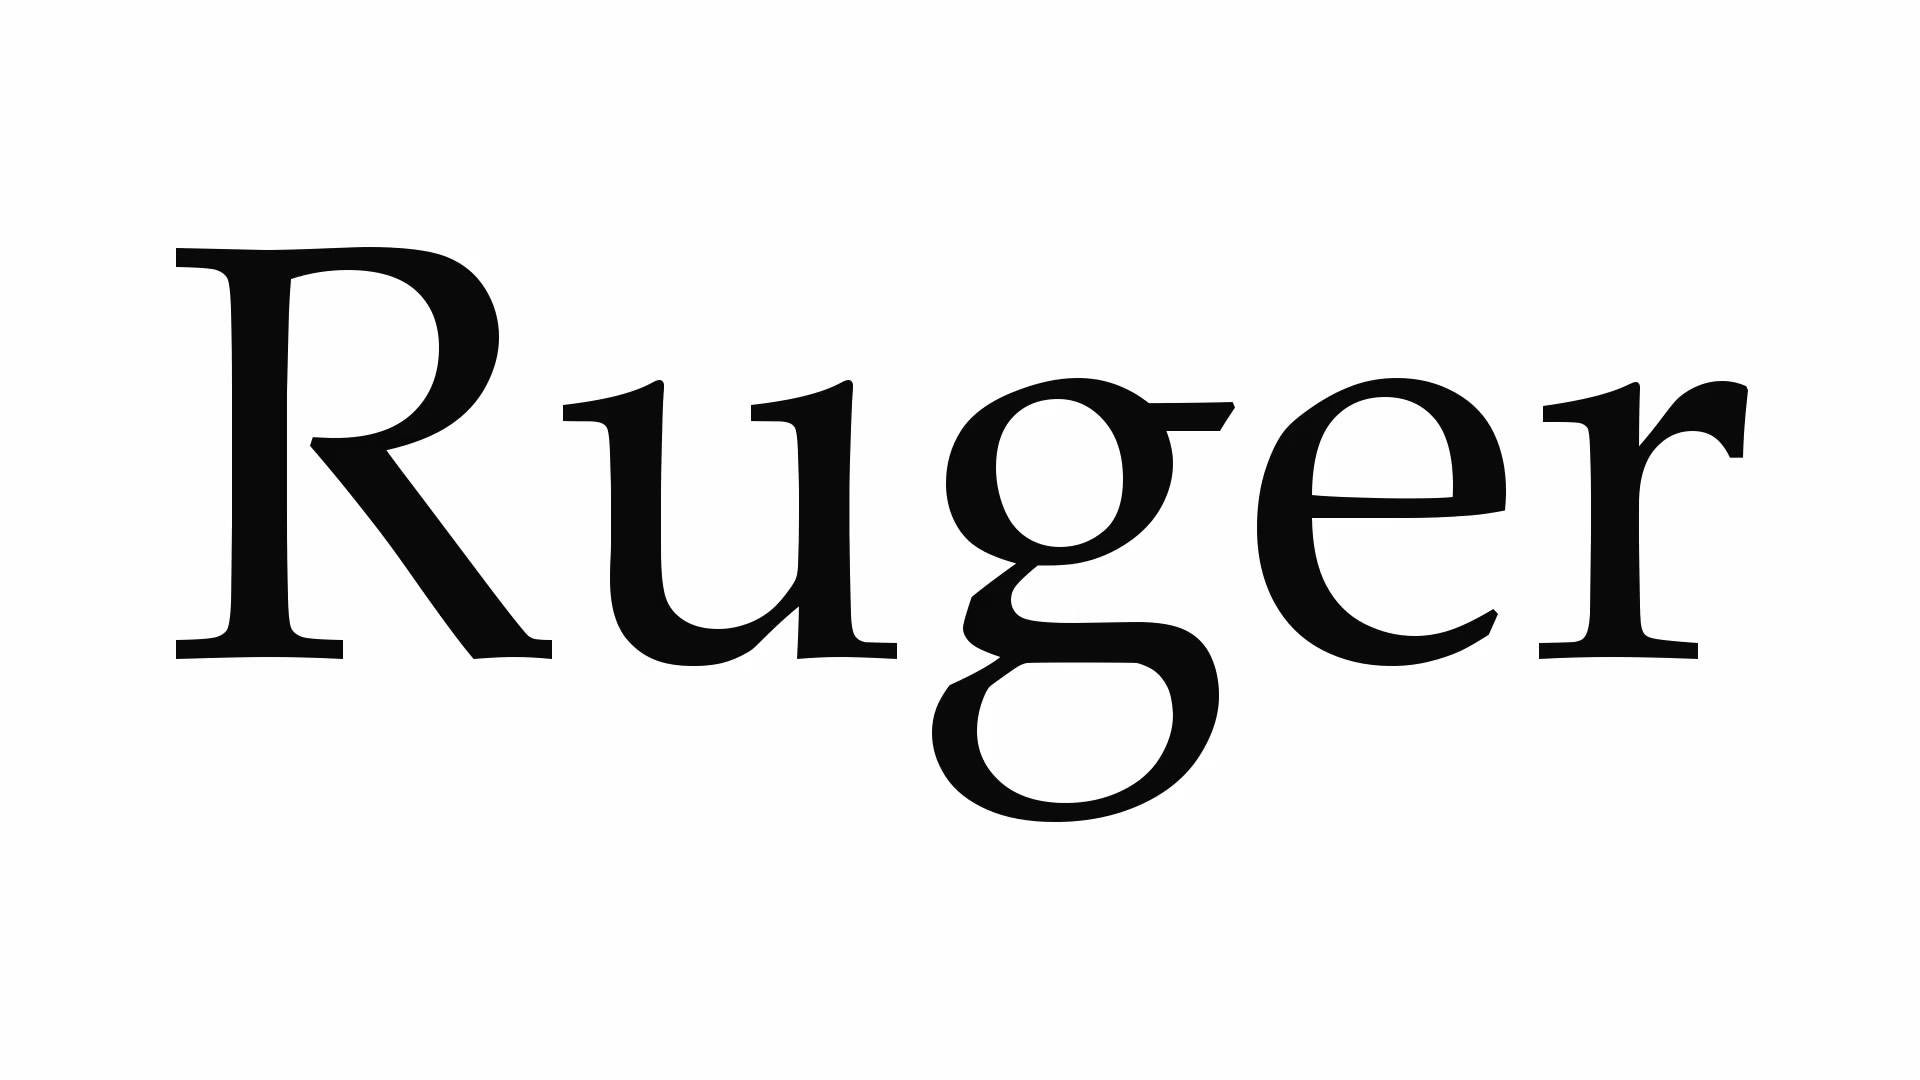 How to Pronounce Ruger